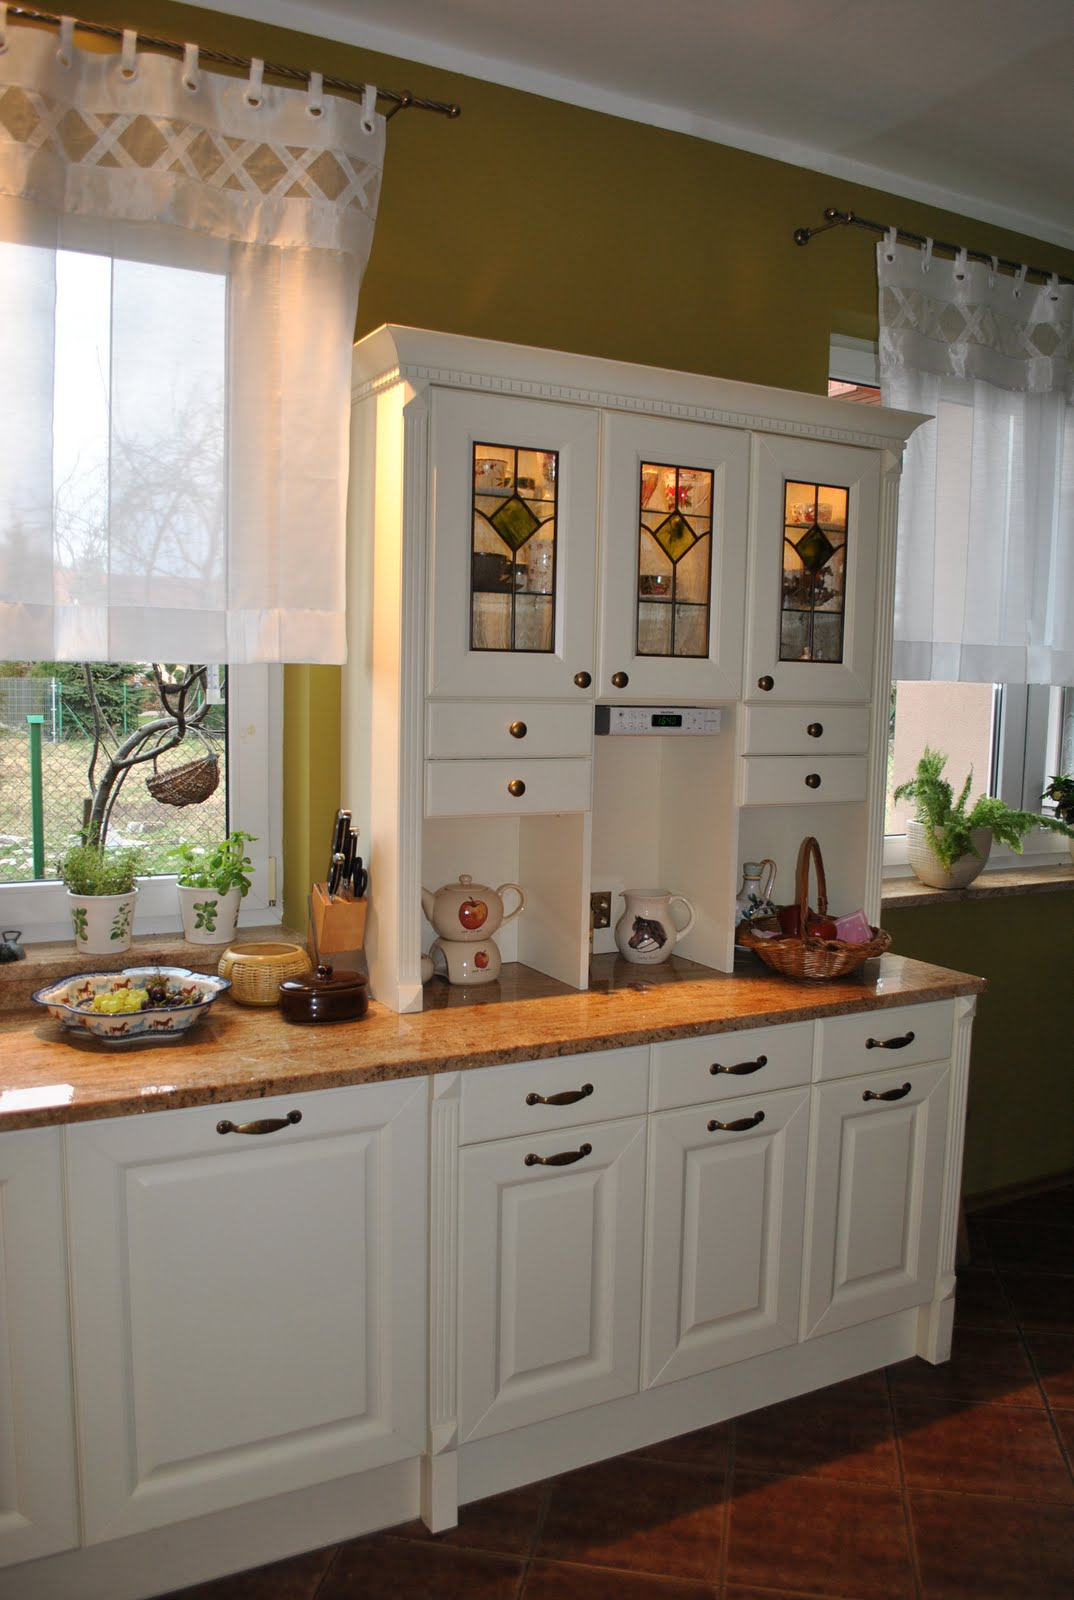 English country style kitchens the interior decorating rooms - Country style kitchen cabinets ...